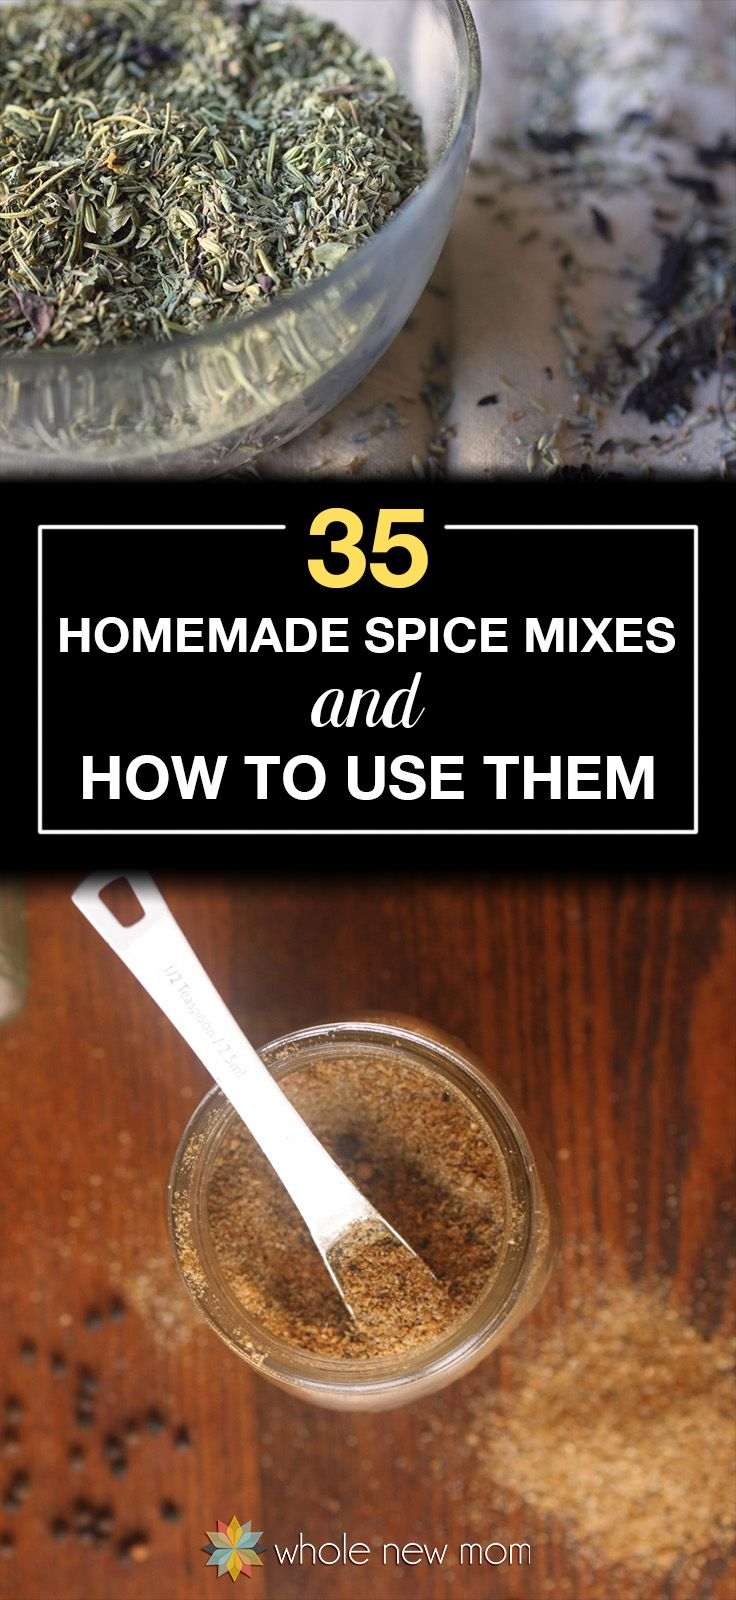 No need to buy spice mixes when you can make them yourself! From curry power to taco seasoning these homemade spice mixes are free of additives. Great ways to use them too.